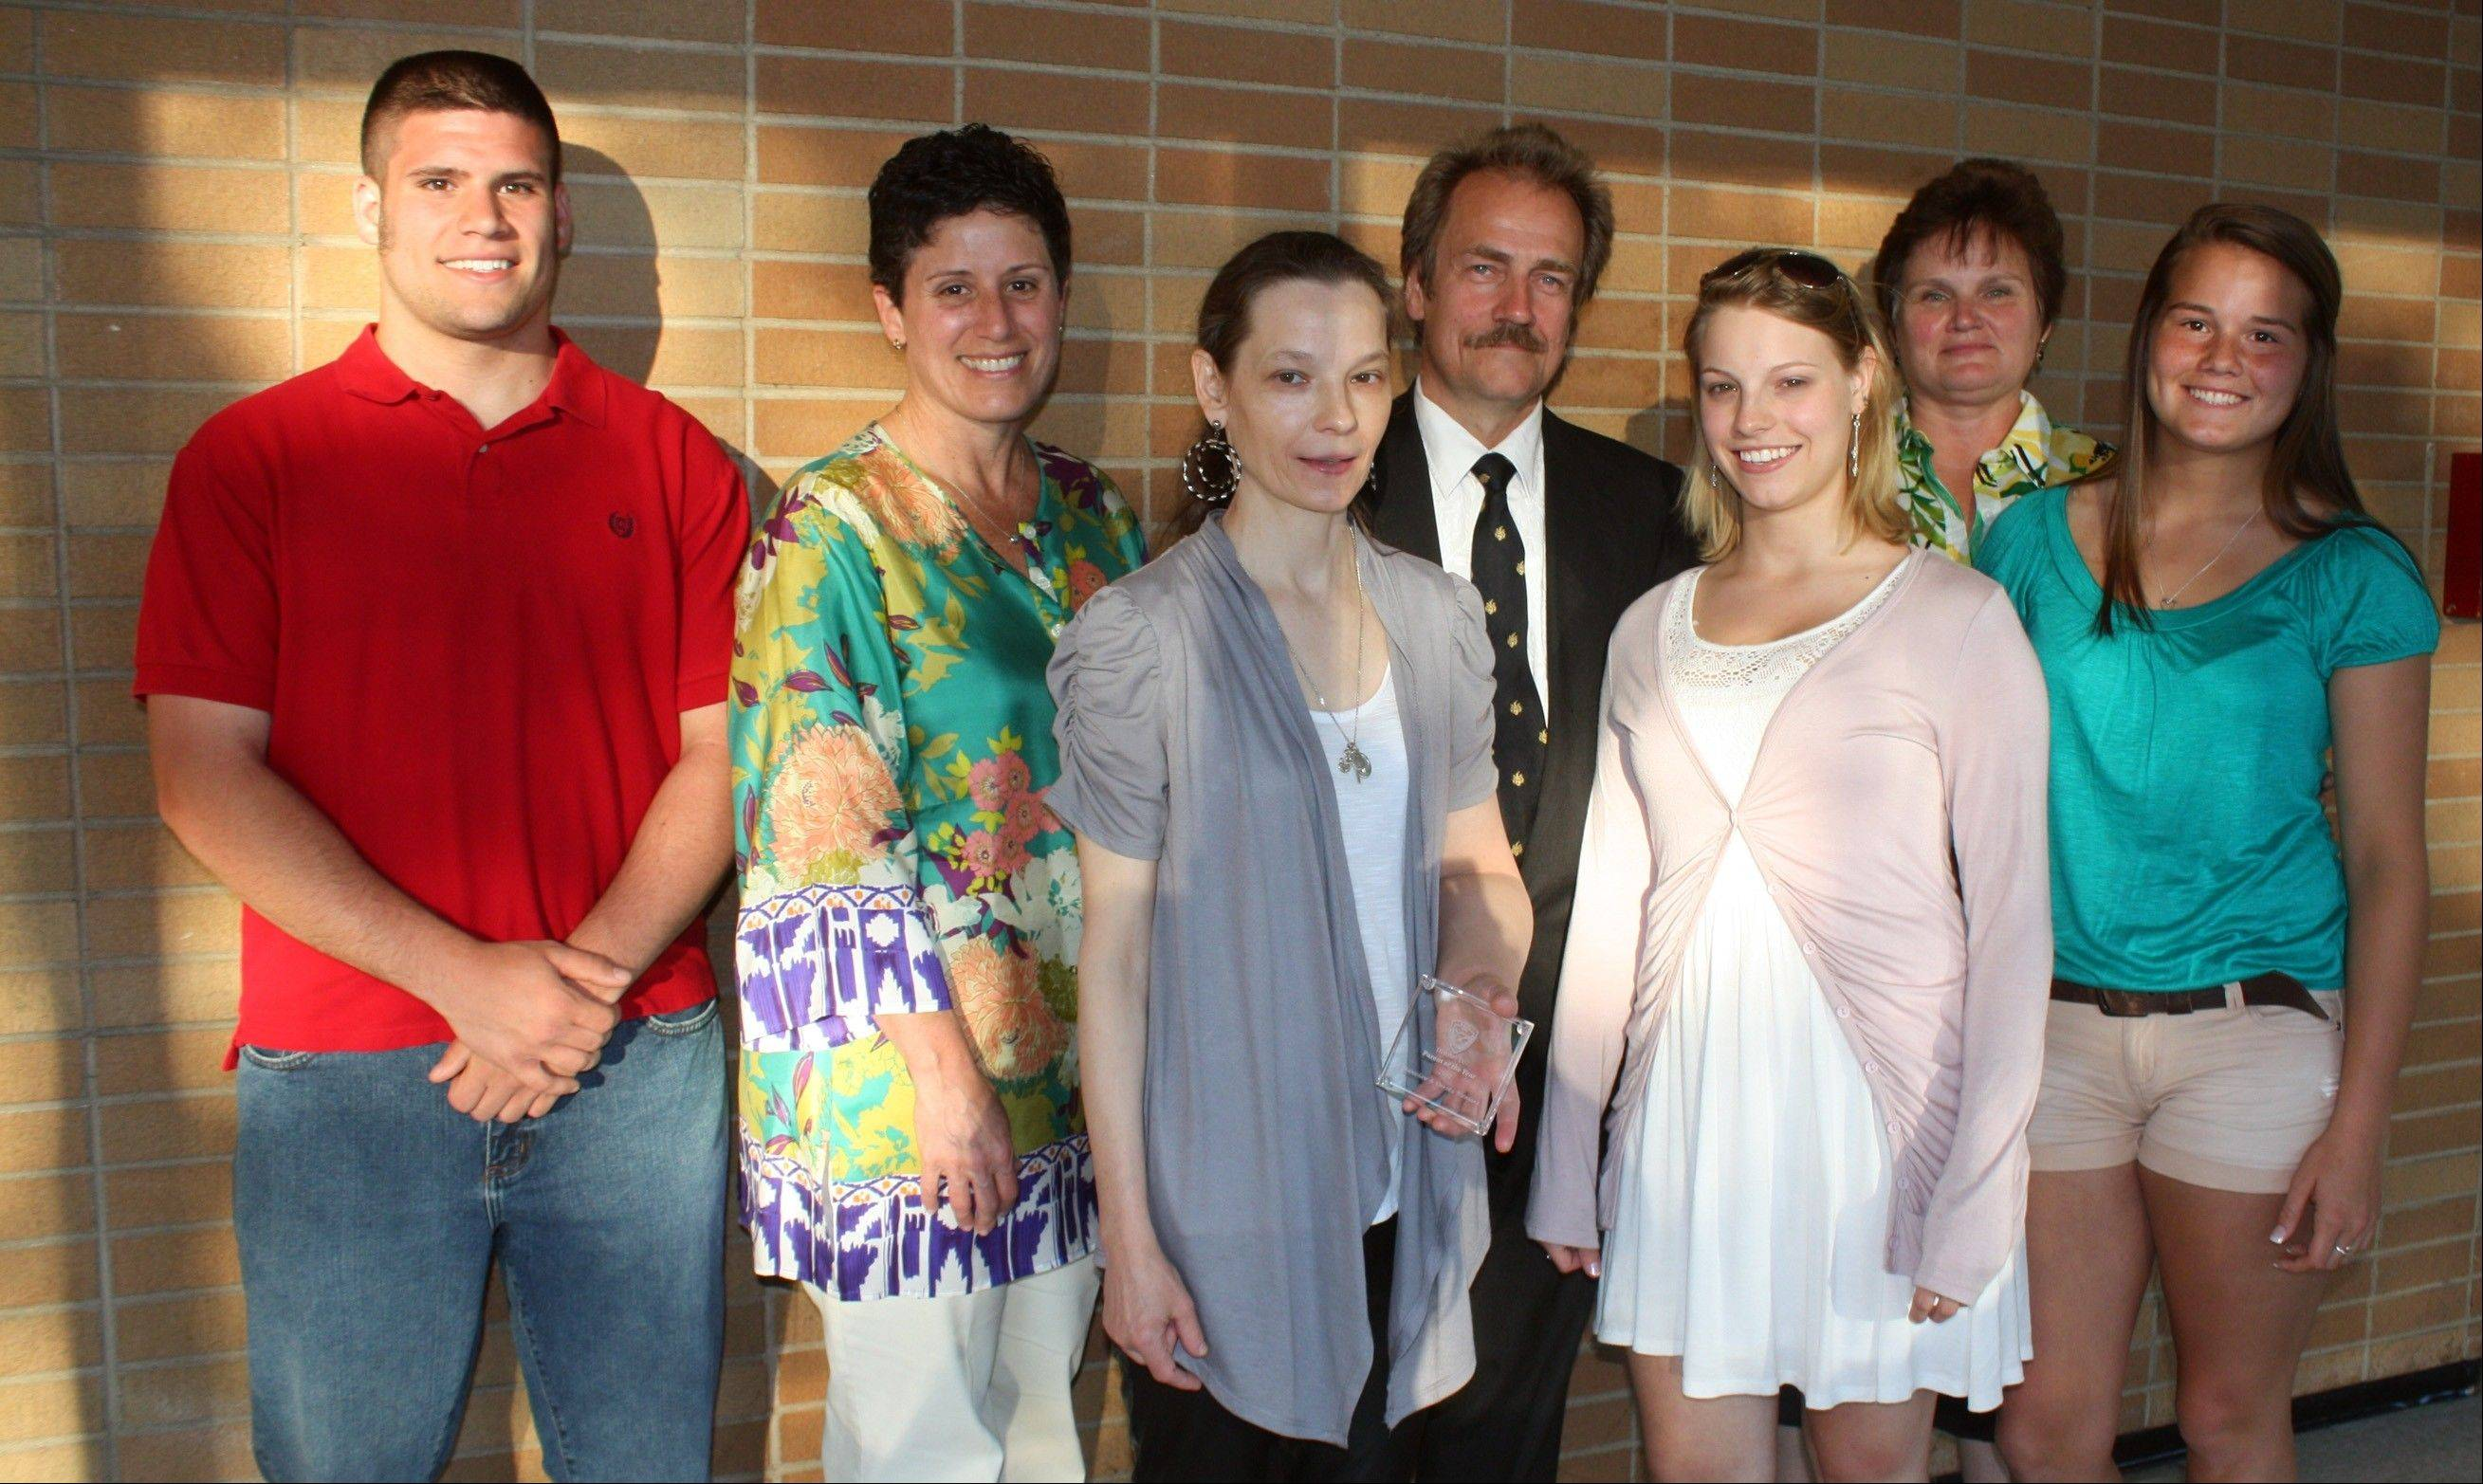 Pictured, from left: Michael White; Patricia Varco-White; Dorota, Stanislaw and Jessica Bieniarz; and Julie and Sara Stepanovich.